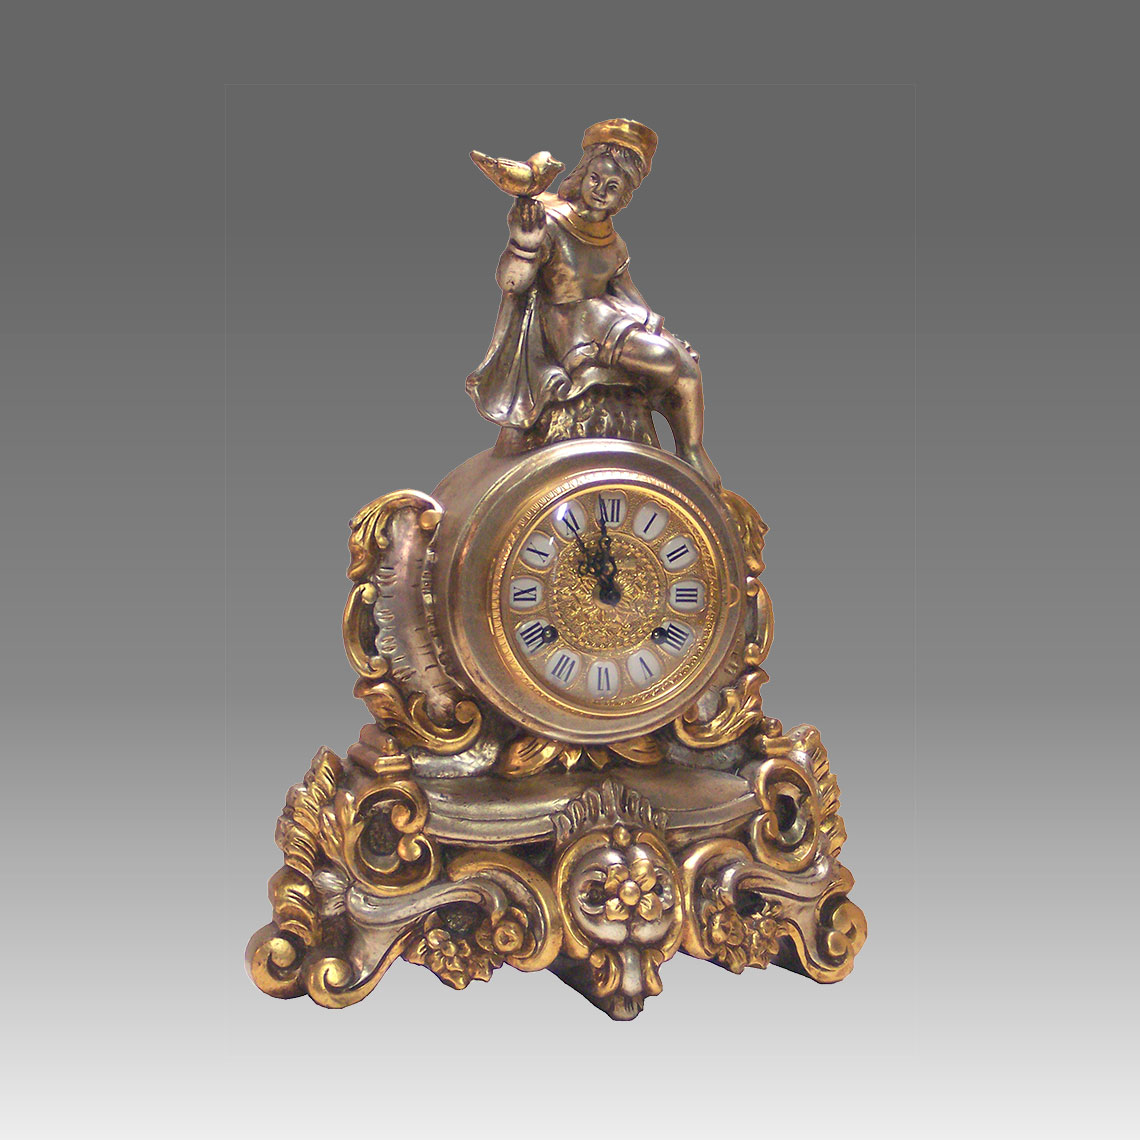 Mante Clock, Table Clock, Cimn Clock, Art.332/SG in silver leaf whith gold leaf particular- Bim Bam melody on Bells, gilt gold round dial